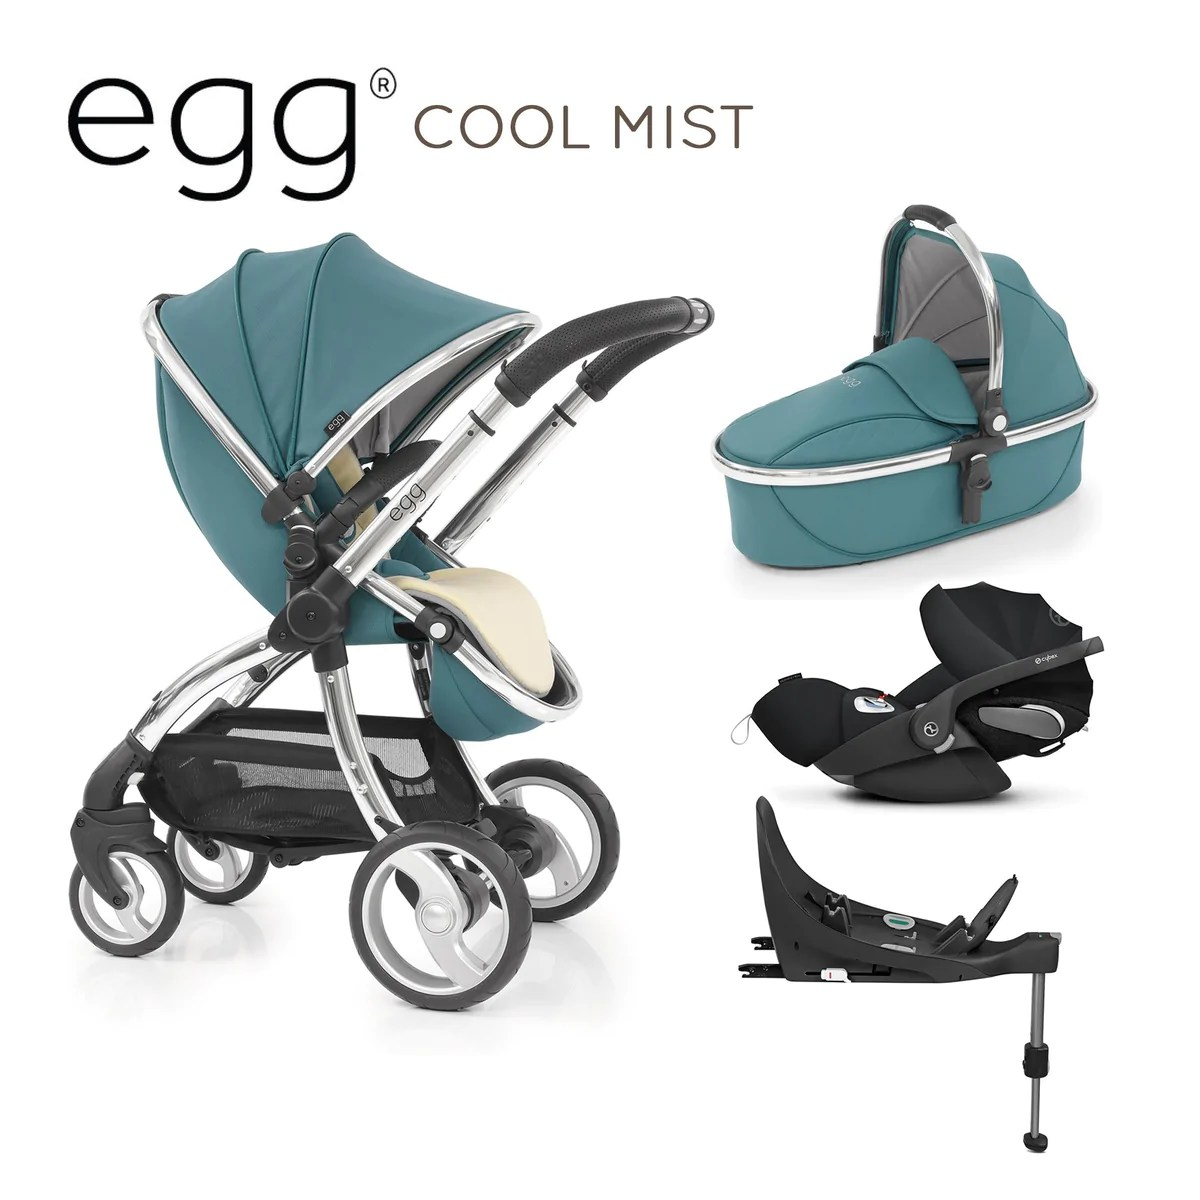 Egg Stroller Cool Mist Egg Travel System Cool Mist With Cybex Cloud Z And Base